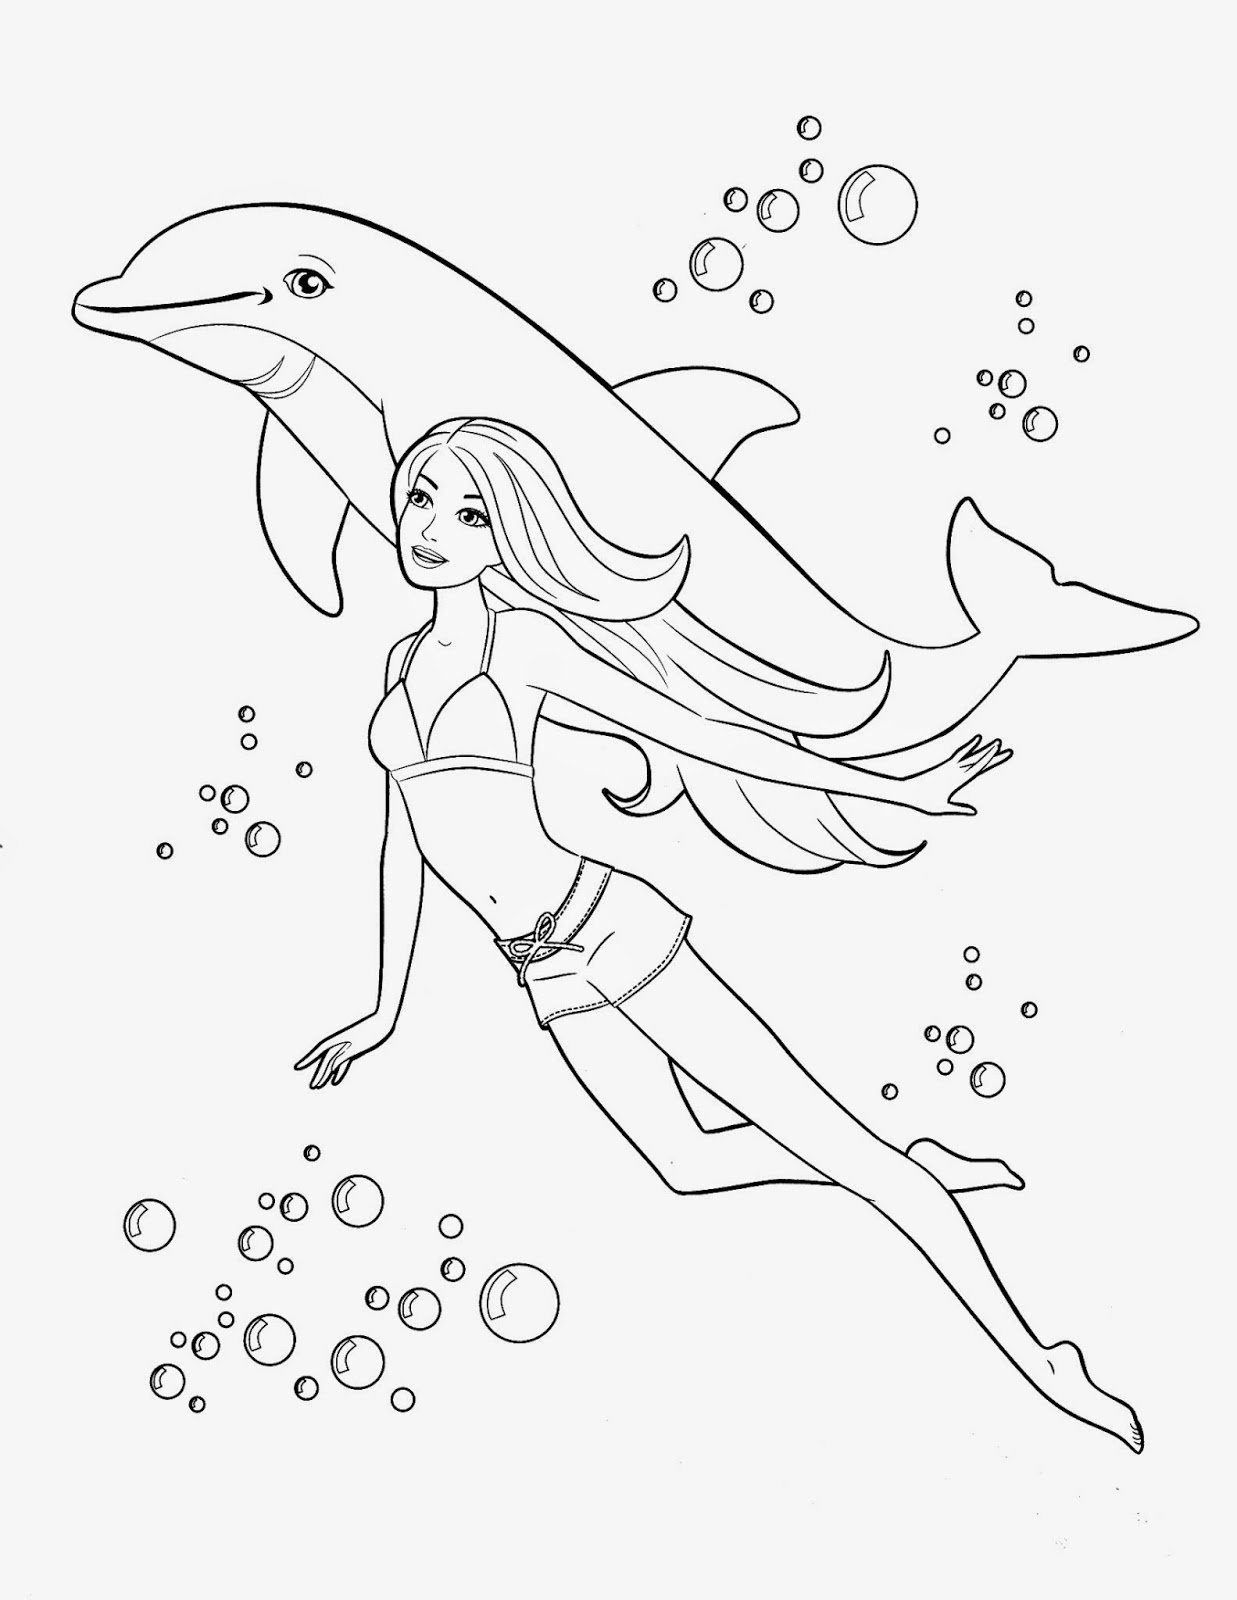 barbie coloring pages coloring pages barbie free printable coloring pages pages barbie coloring 1 2